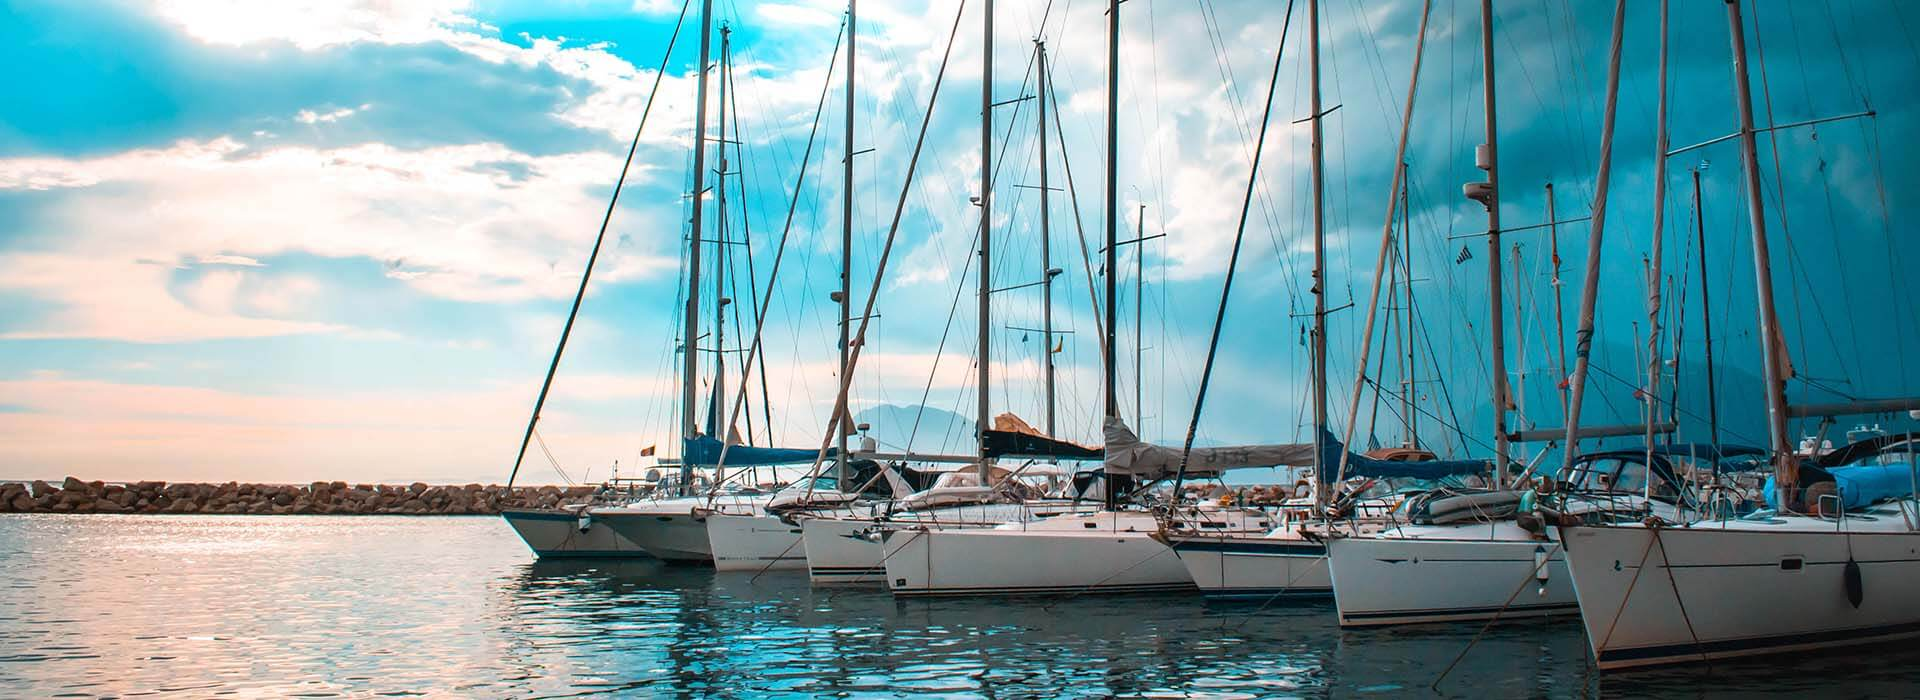 Series of sailboats docked alongside one another..